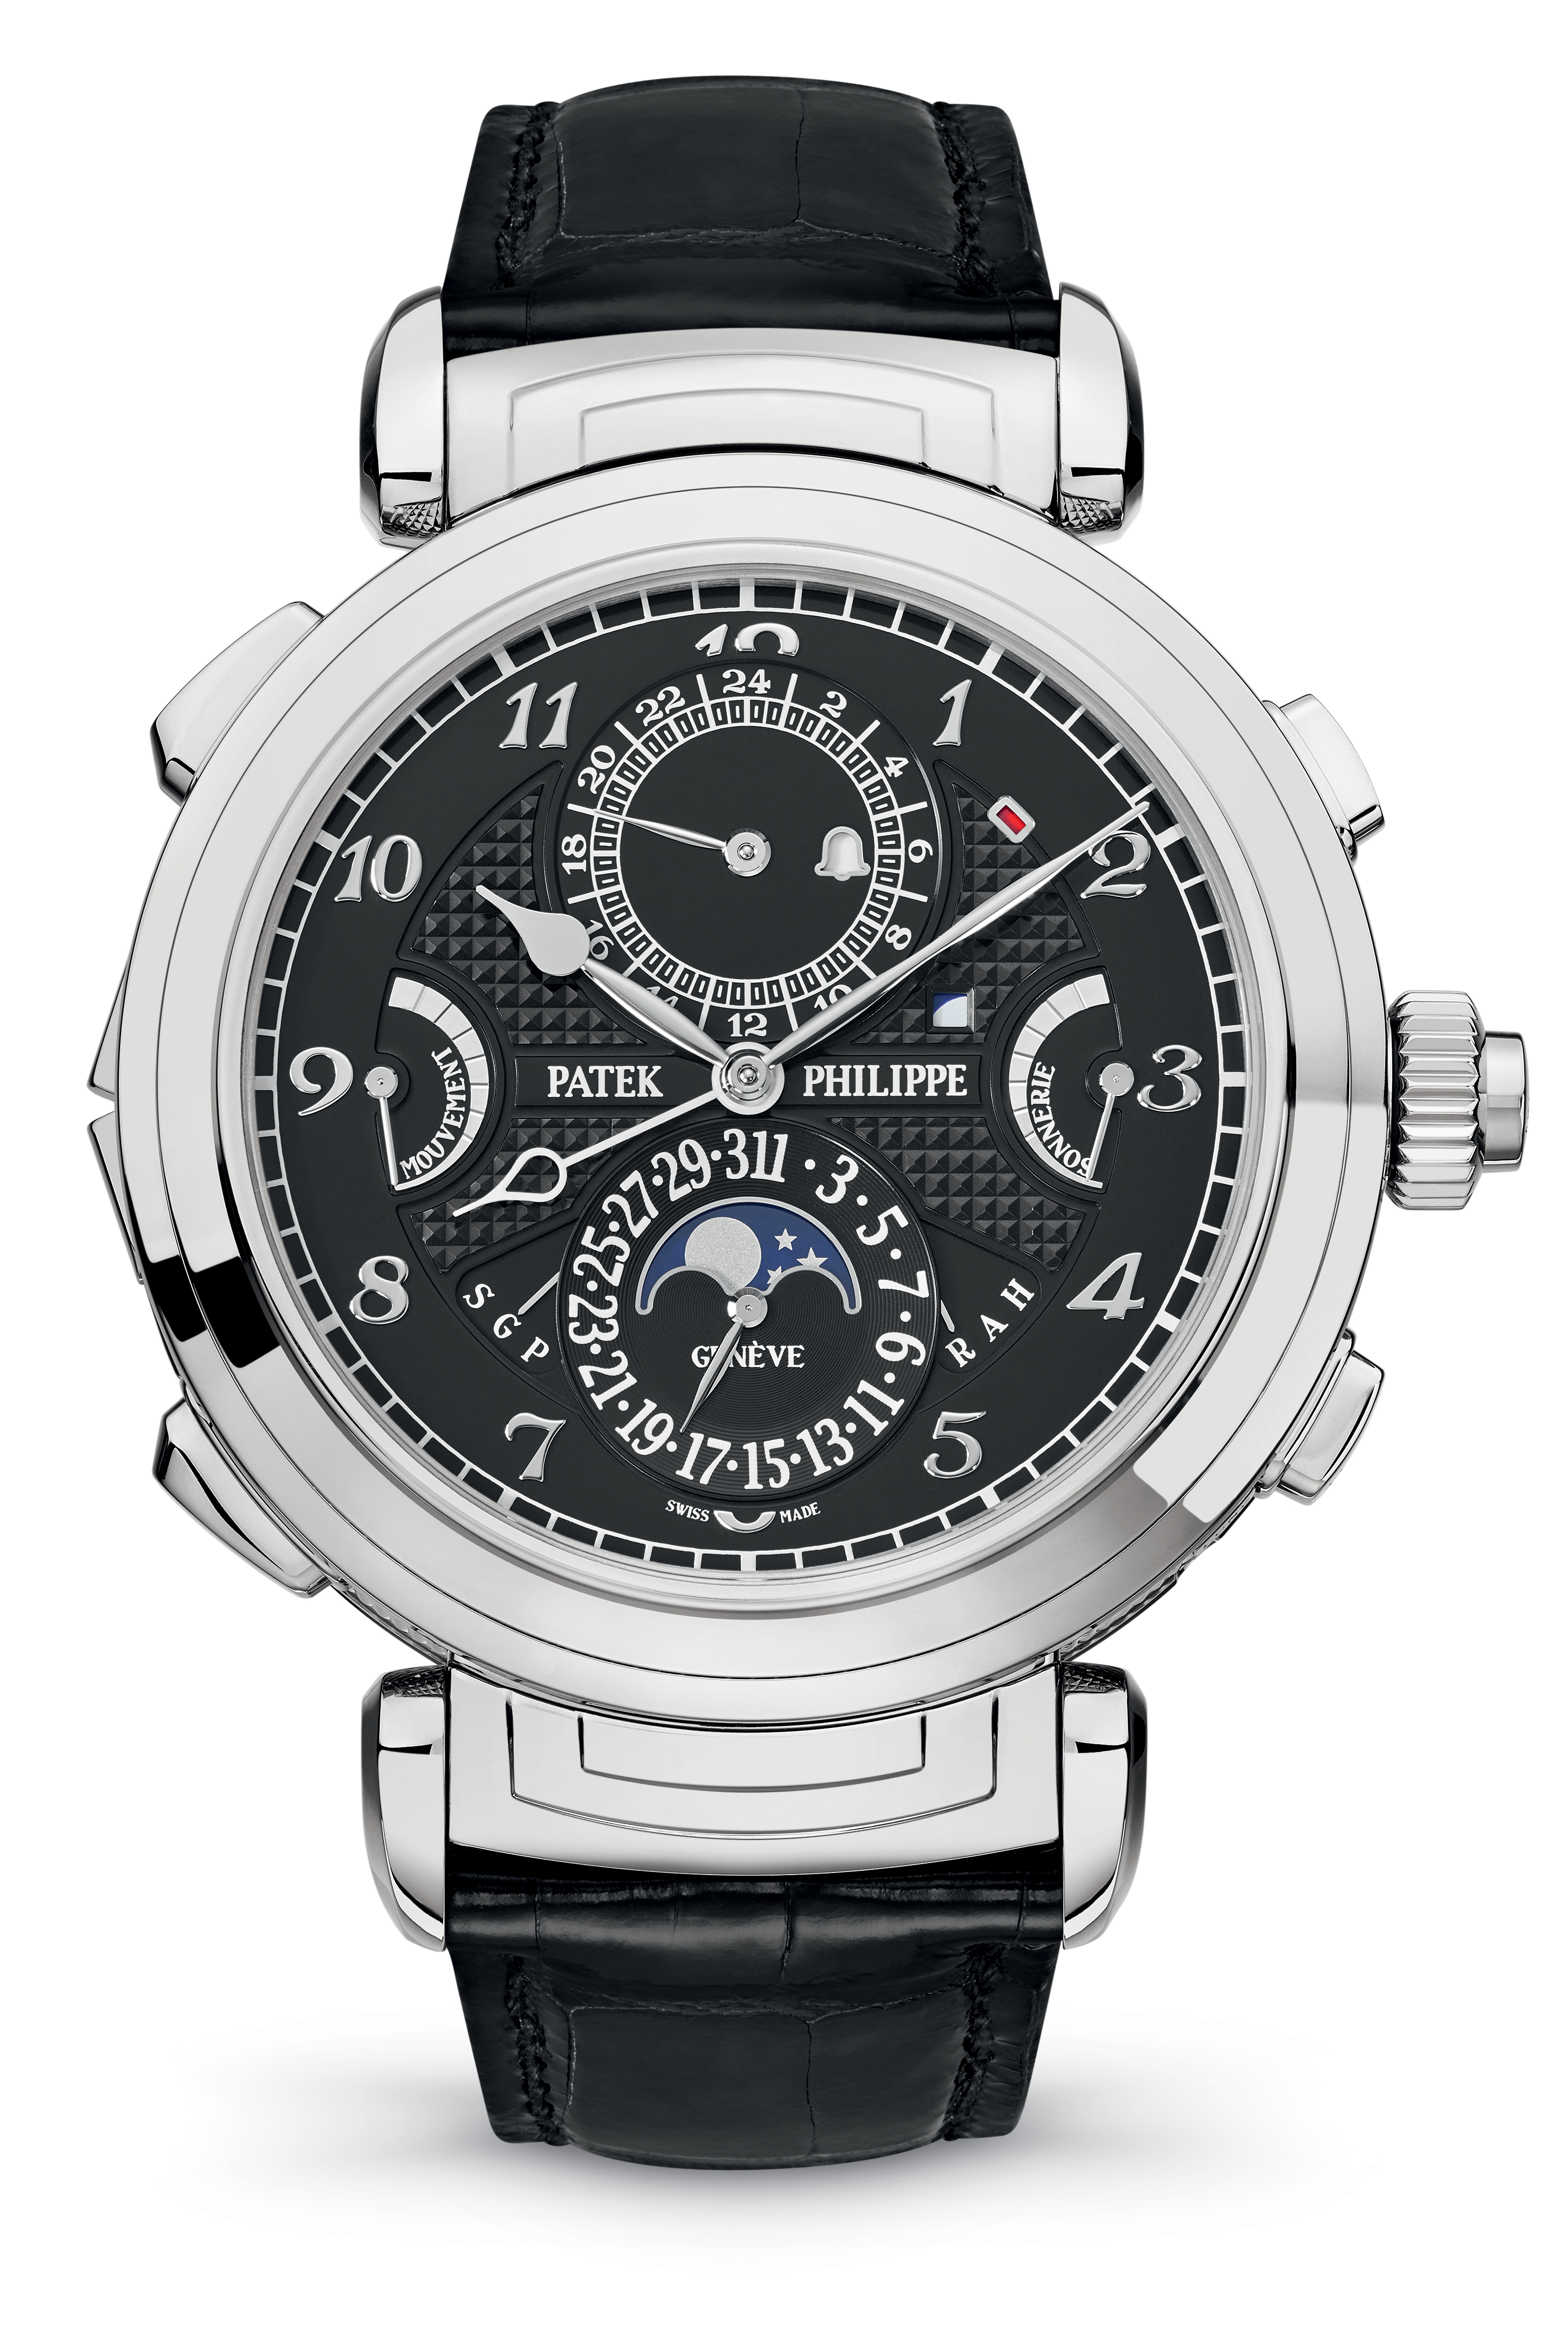 Grand Complication - 6300G-001